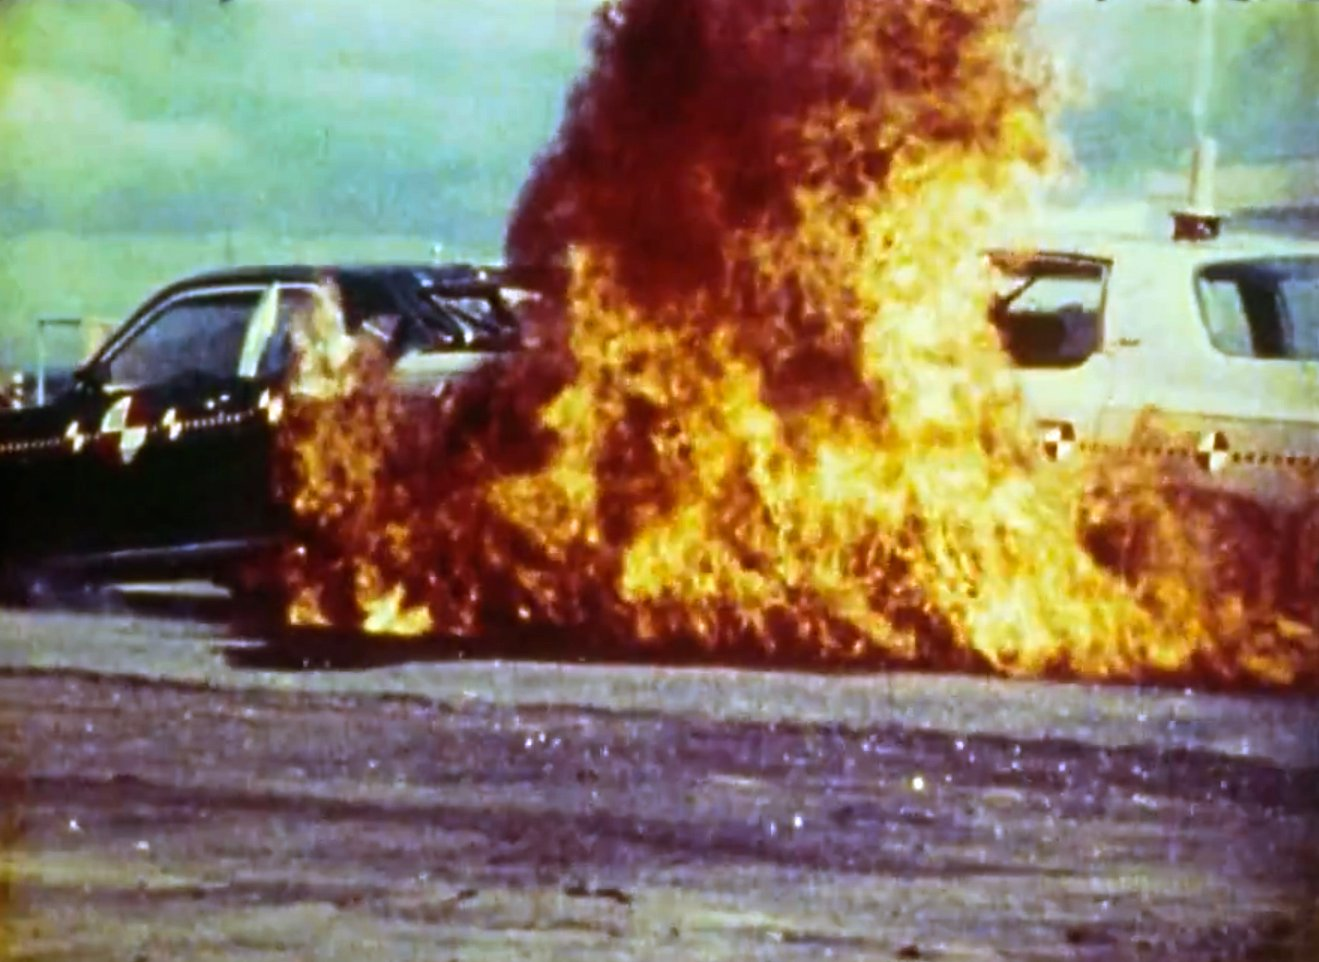 Legendary Crash Test Video: 71 Impala vs 72 Pinto - Full Rear Impact - Chevy Hardcore